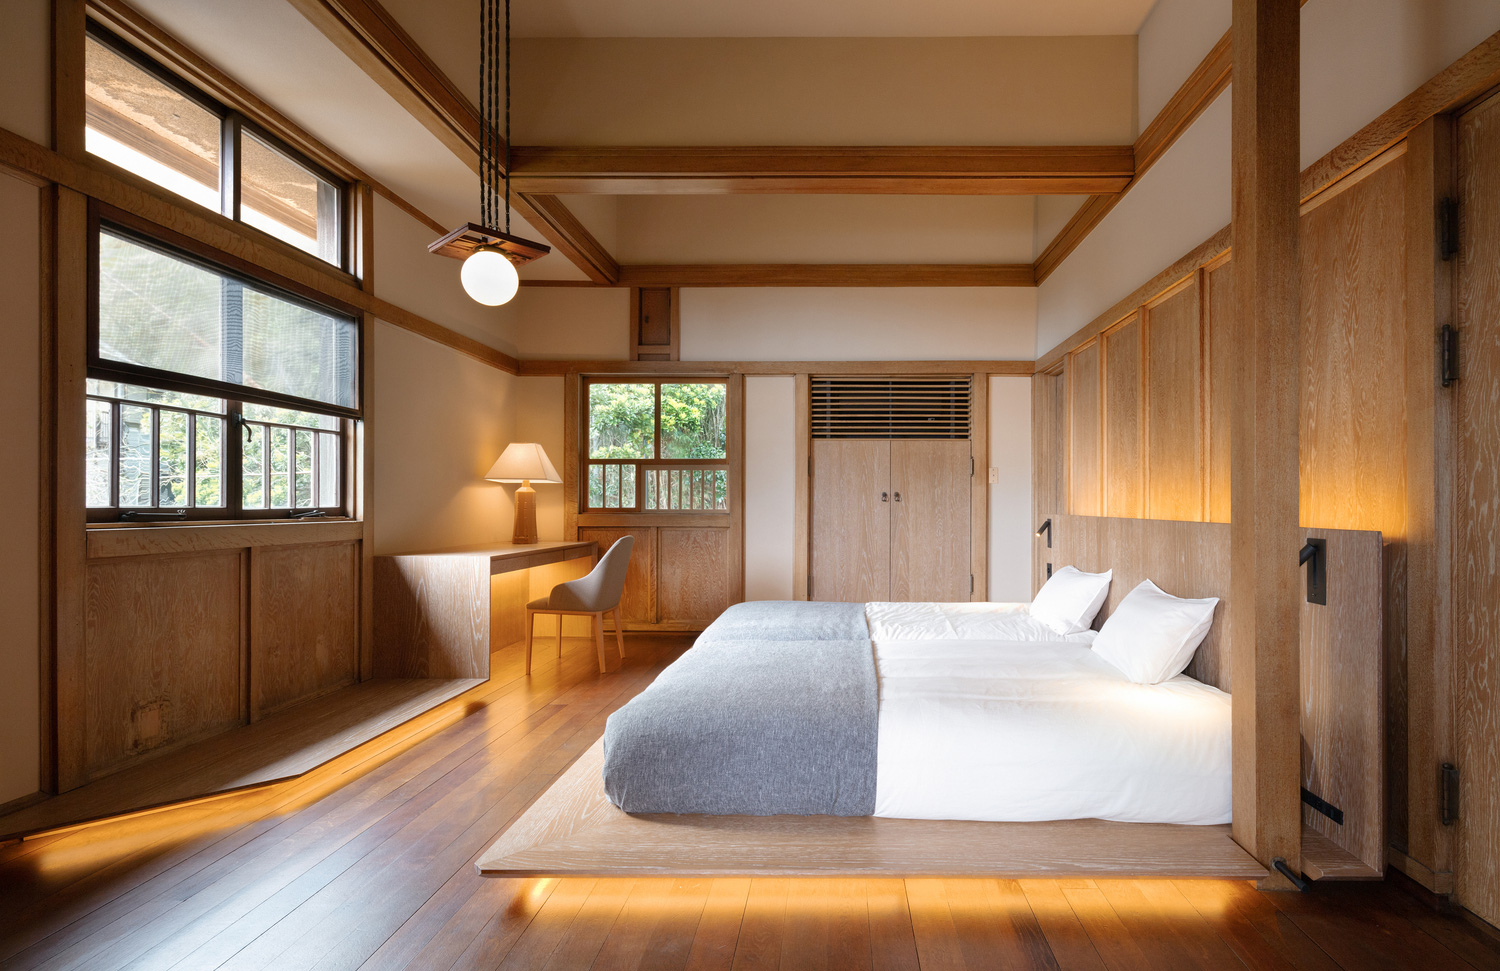 Hayama Kachitei Hotel inhabits a Prairie home designed by a Frank Lloyd Wright acolyte